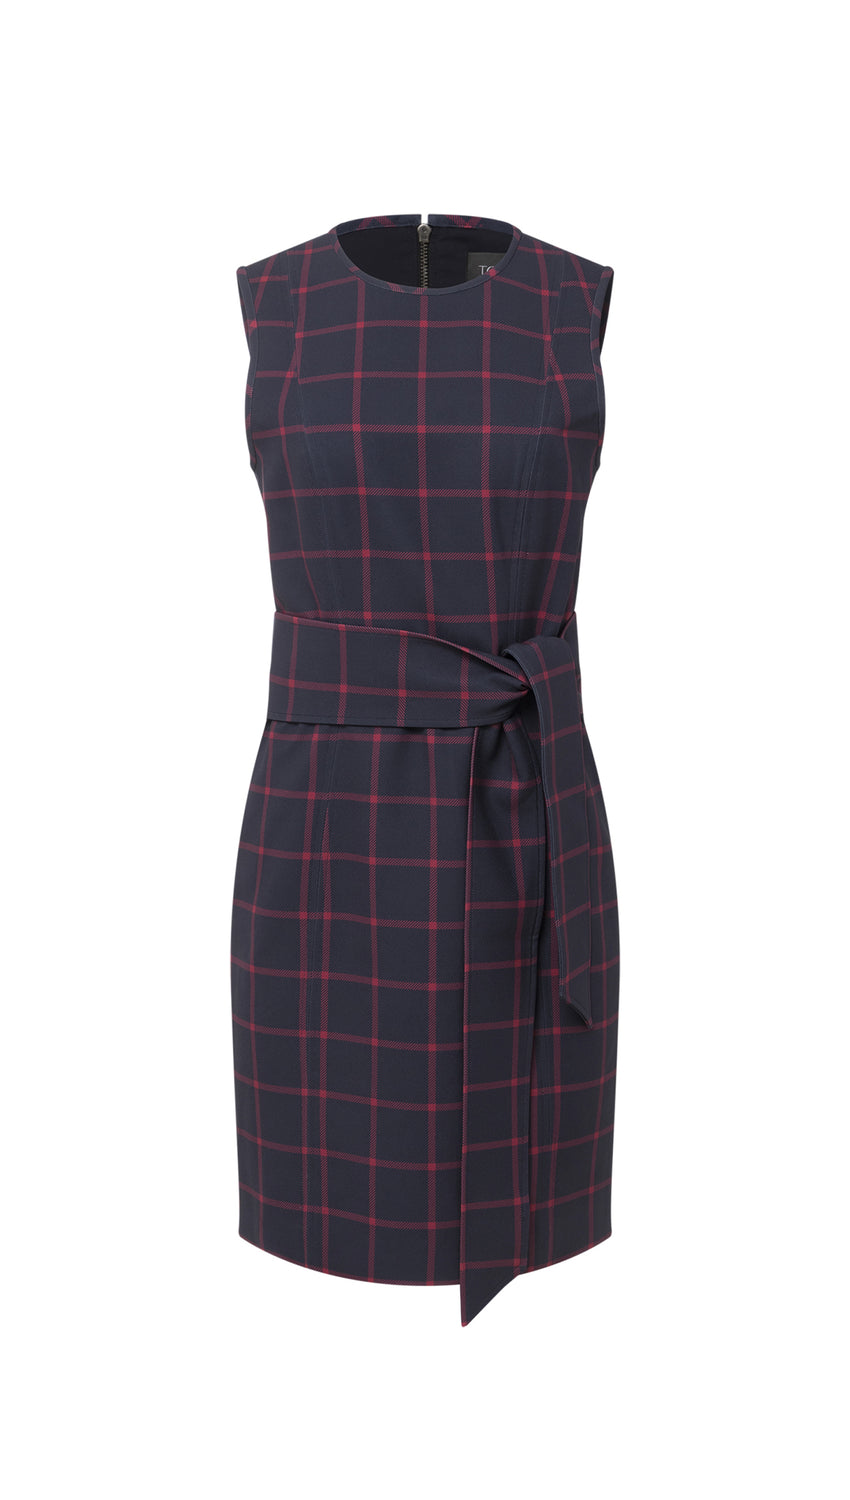 Tie Front Sheath in Midnight + Cranberry